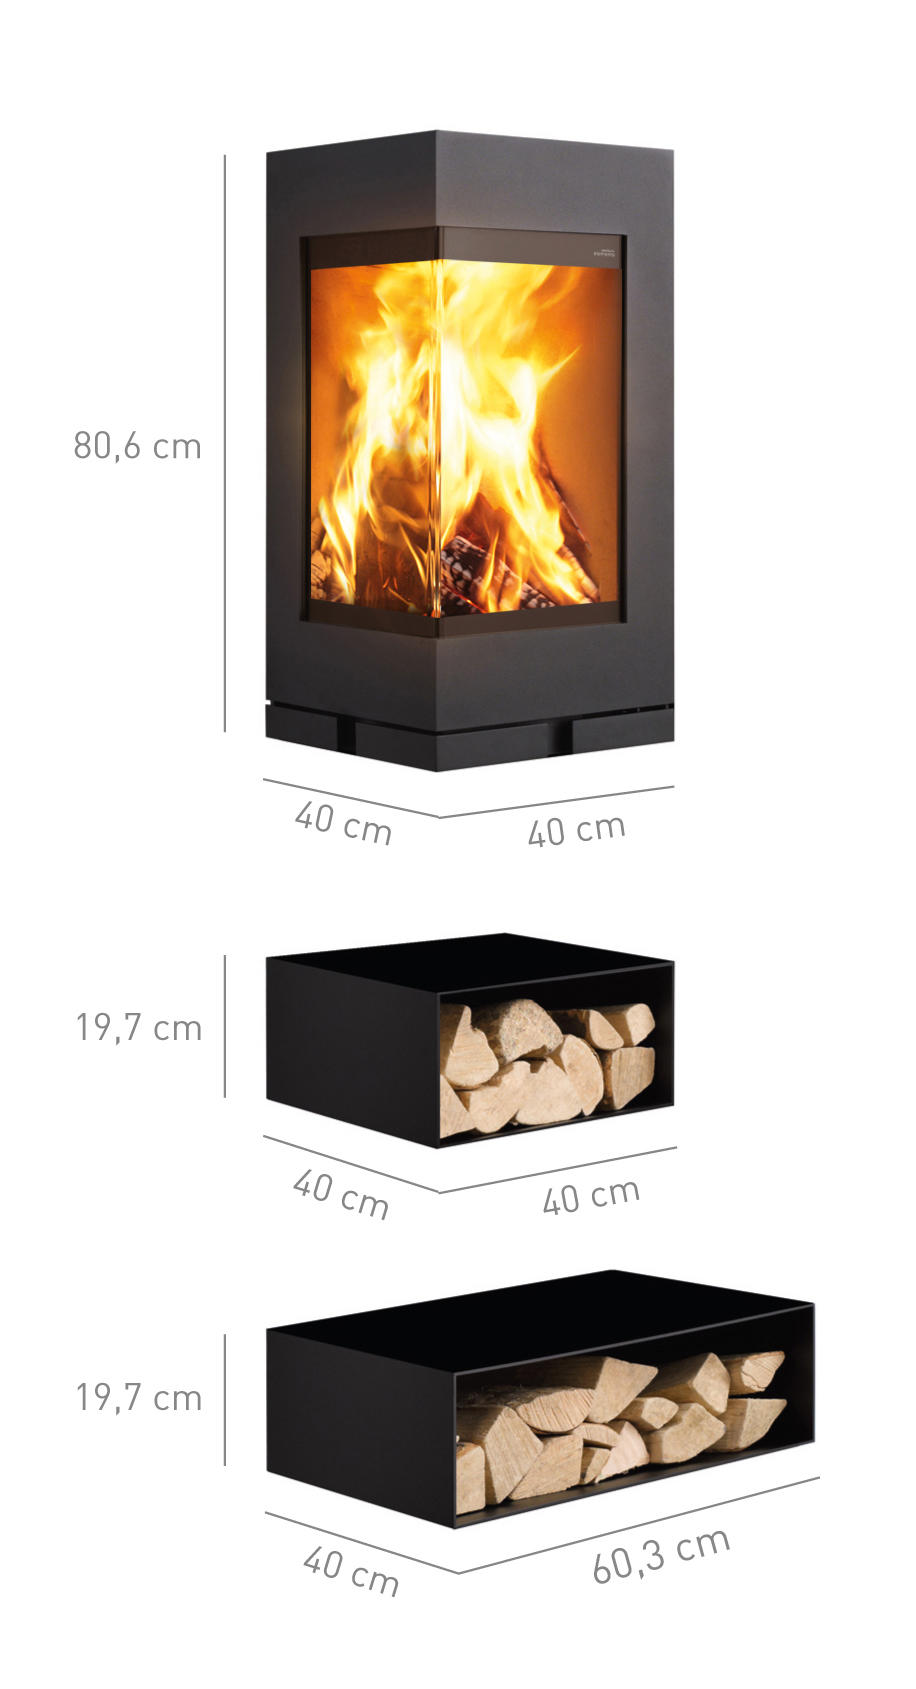 elements rund wood burning stoves from skantherm architonic. Black Bedroom Furniture Sets. Home Design Ideas